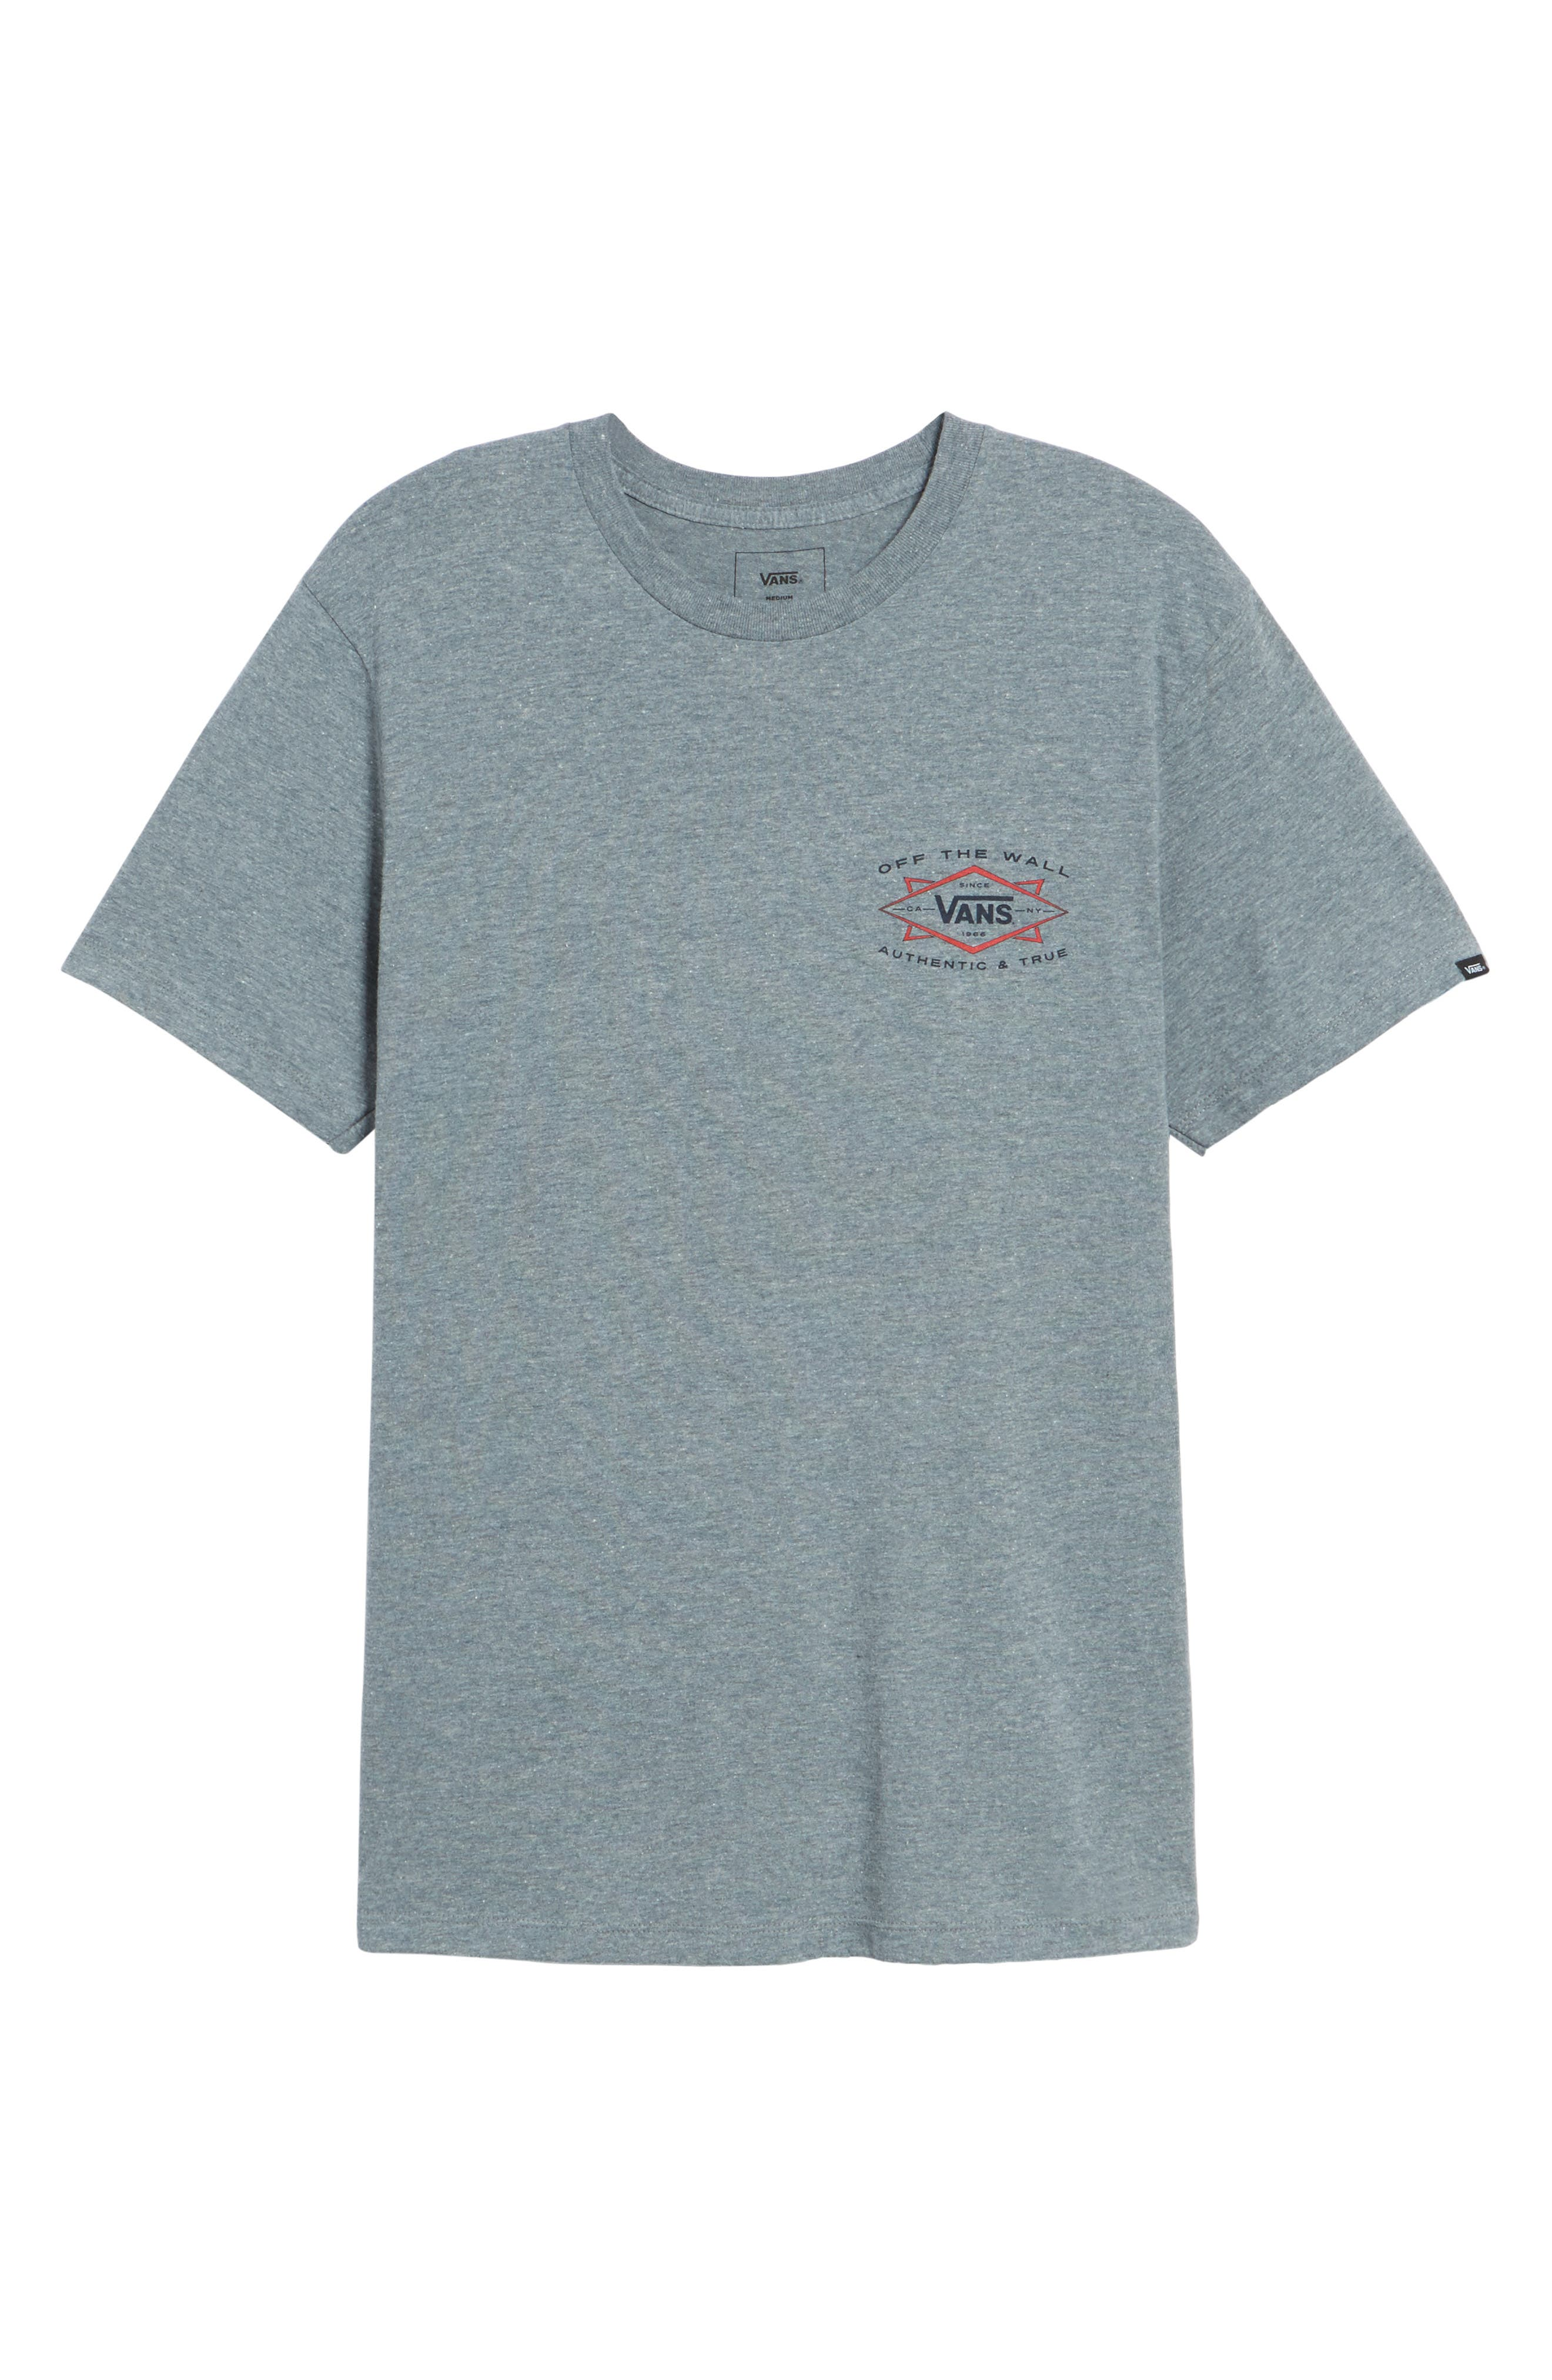 Off the Wall Shaper Graphic T-Shirt,                             Alternate thumbnail 6, color,                             021